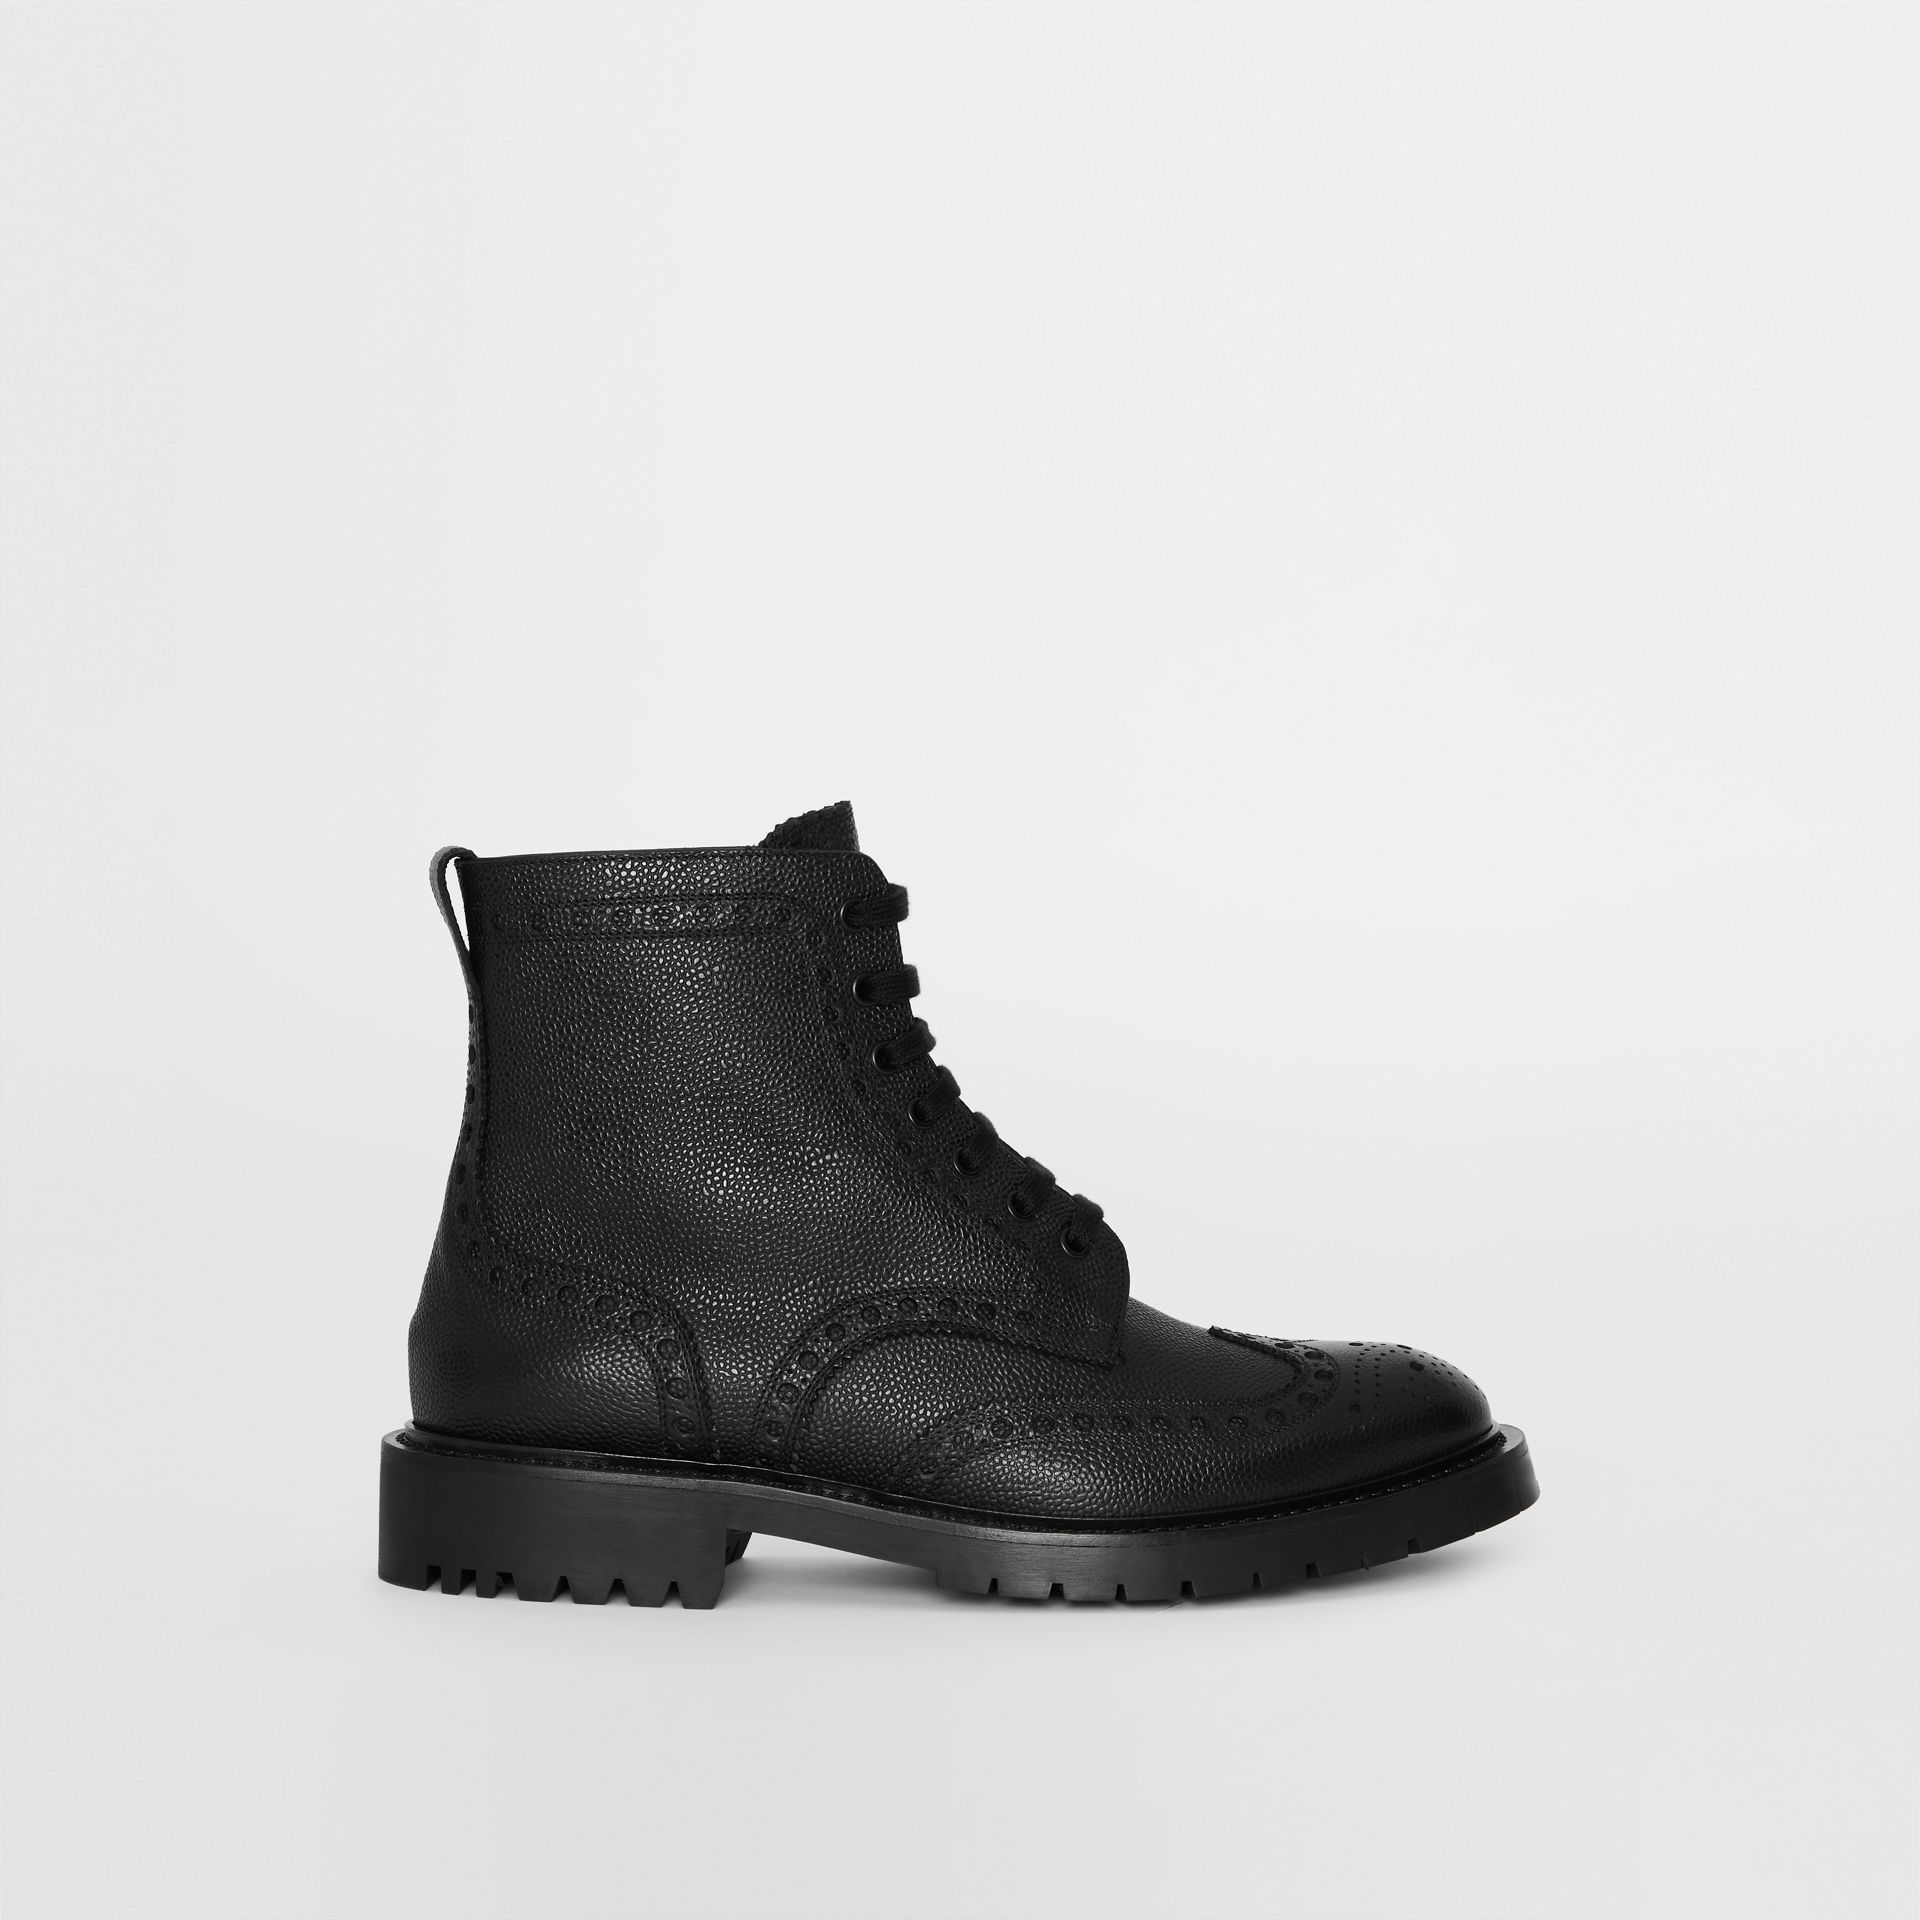 Brogue Detail Grainy Leather Boots in Black - Men | Burberry United States - gallery image 5